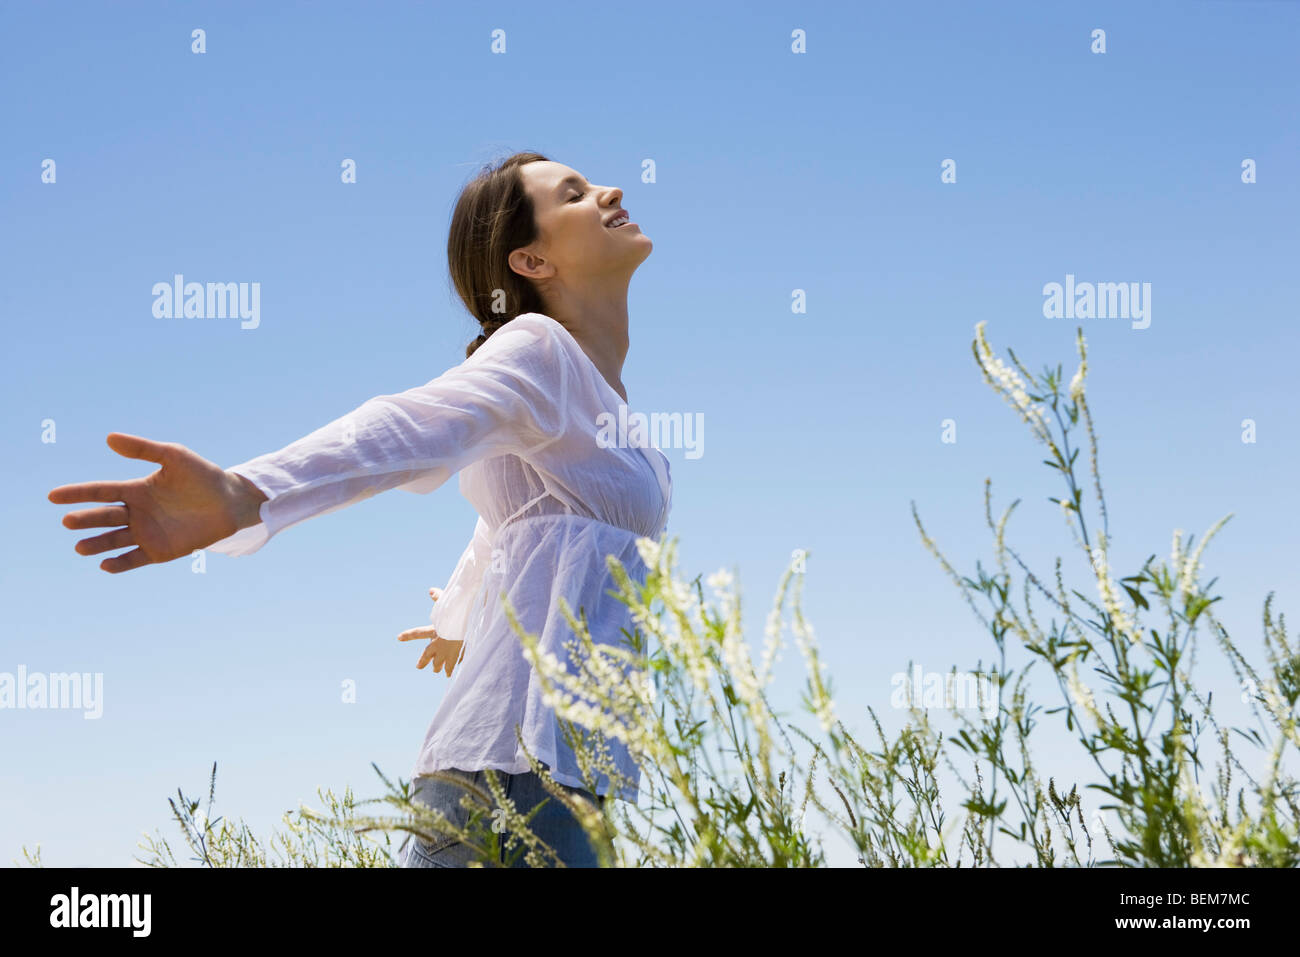 Young woman standing in tall grass with arms out, eyes closed - Stock Image